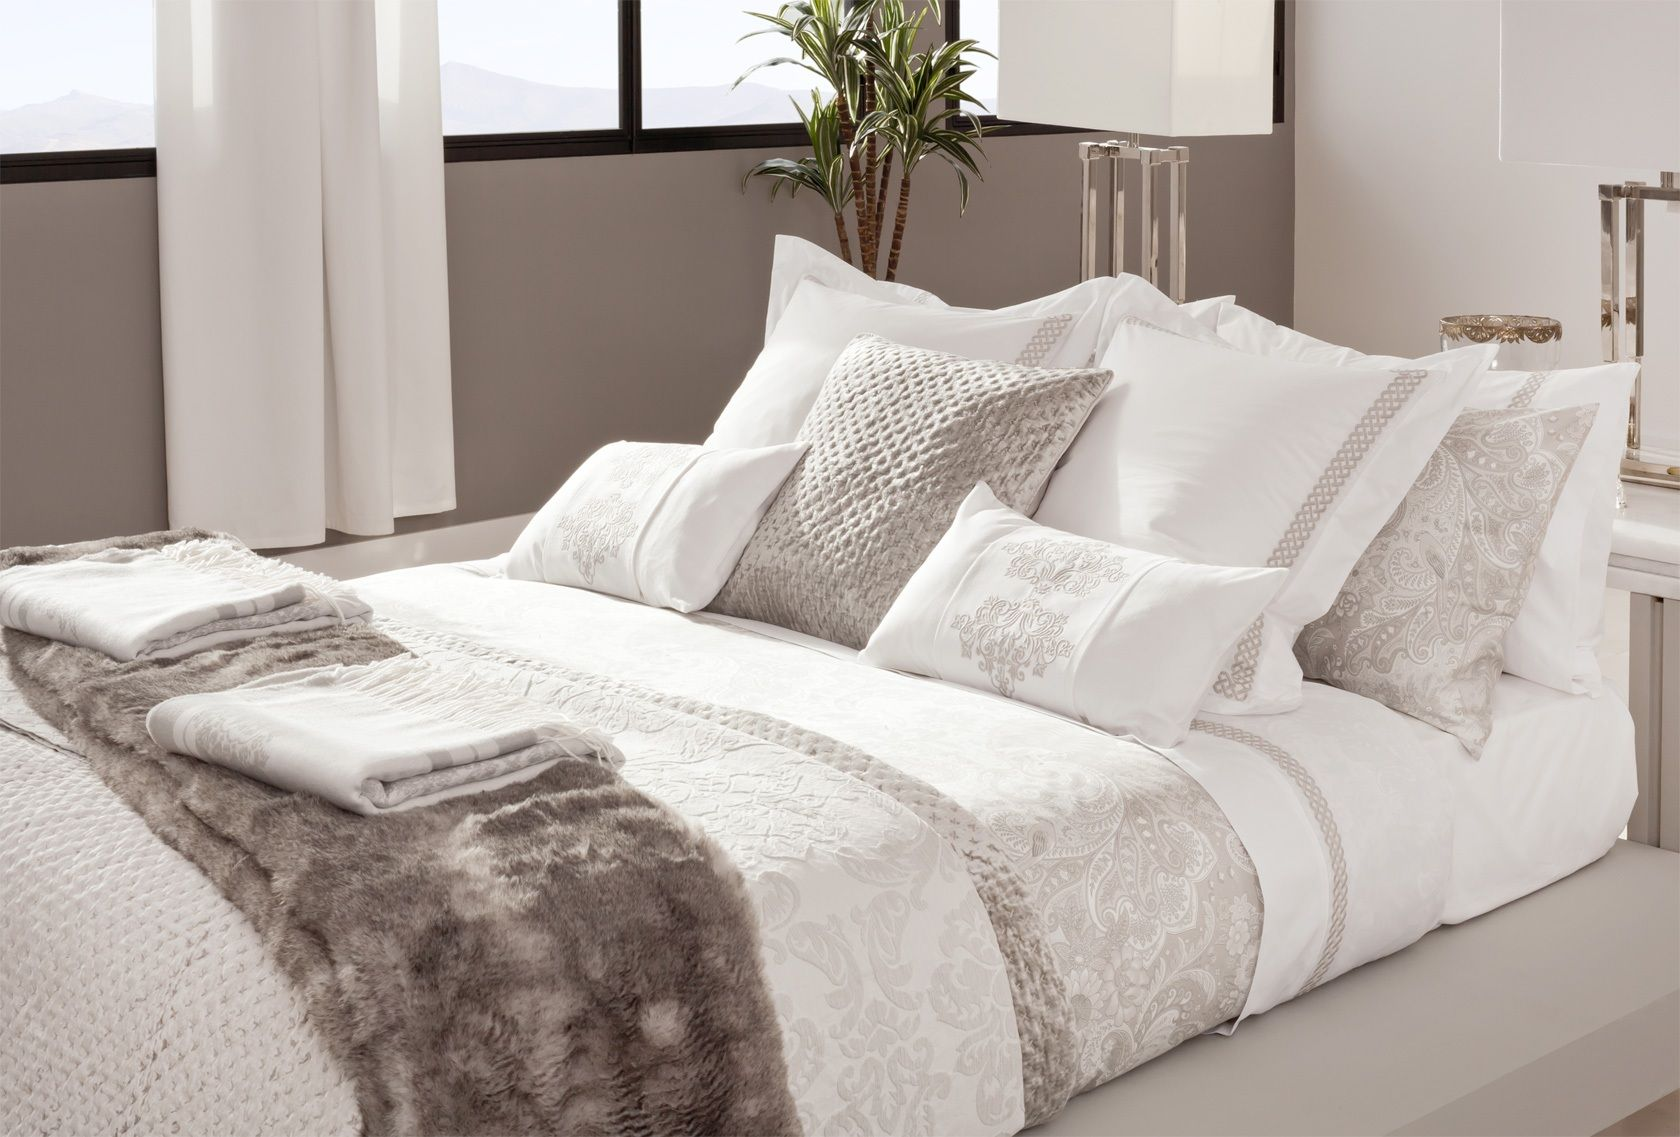 Zara home nederland faux fur alternatives pinterest - Copriletto zara home ...